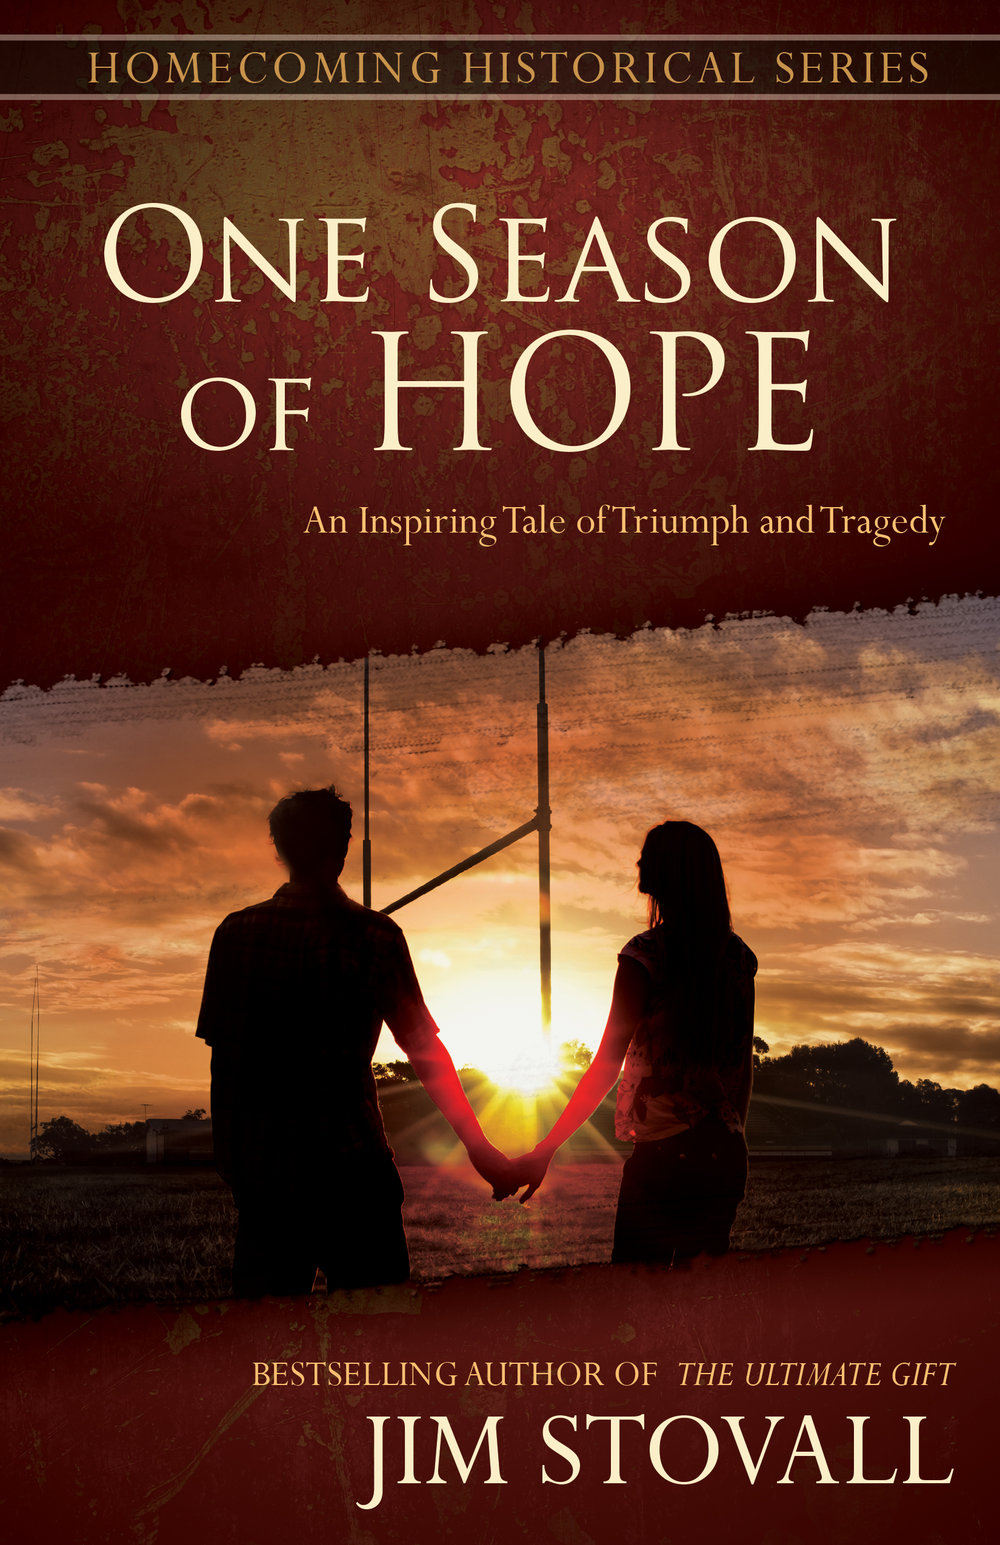 One Season of Hope - By jim stovall